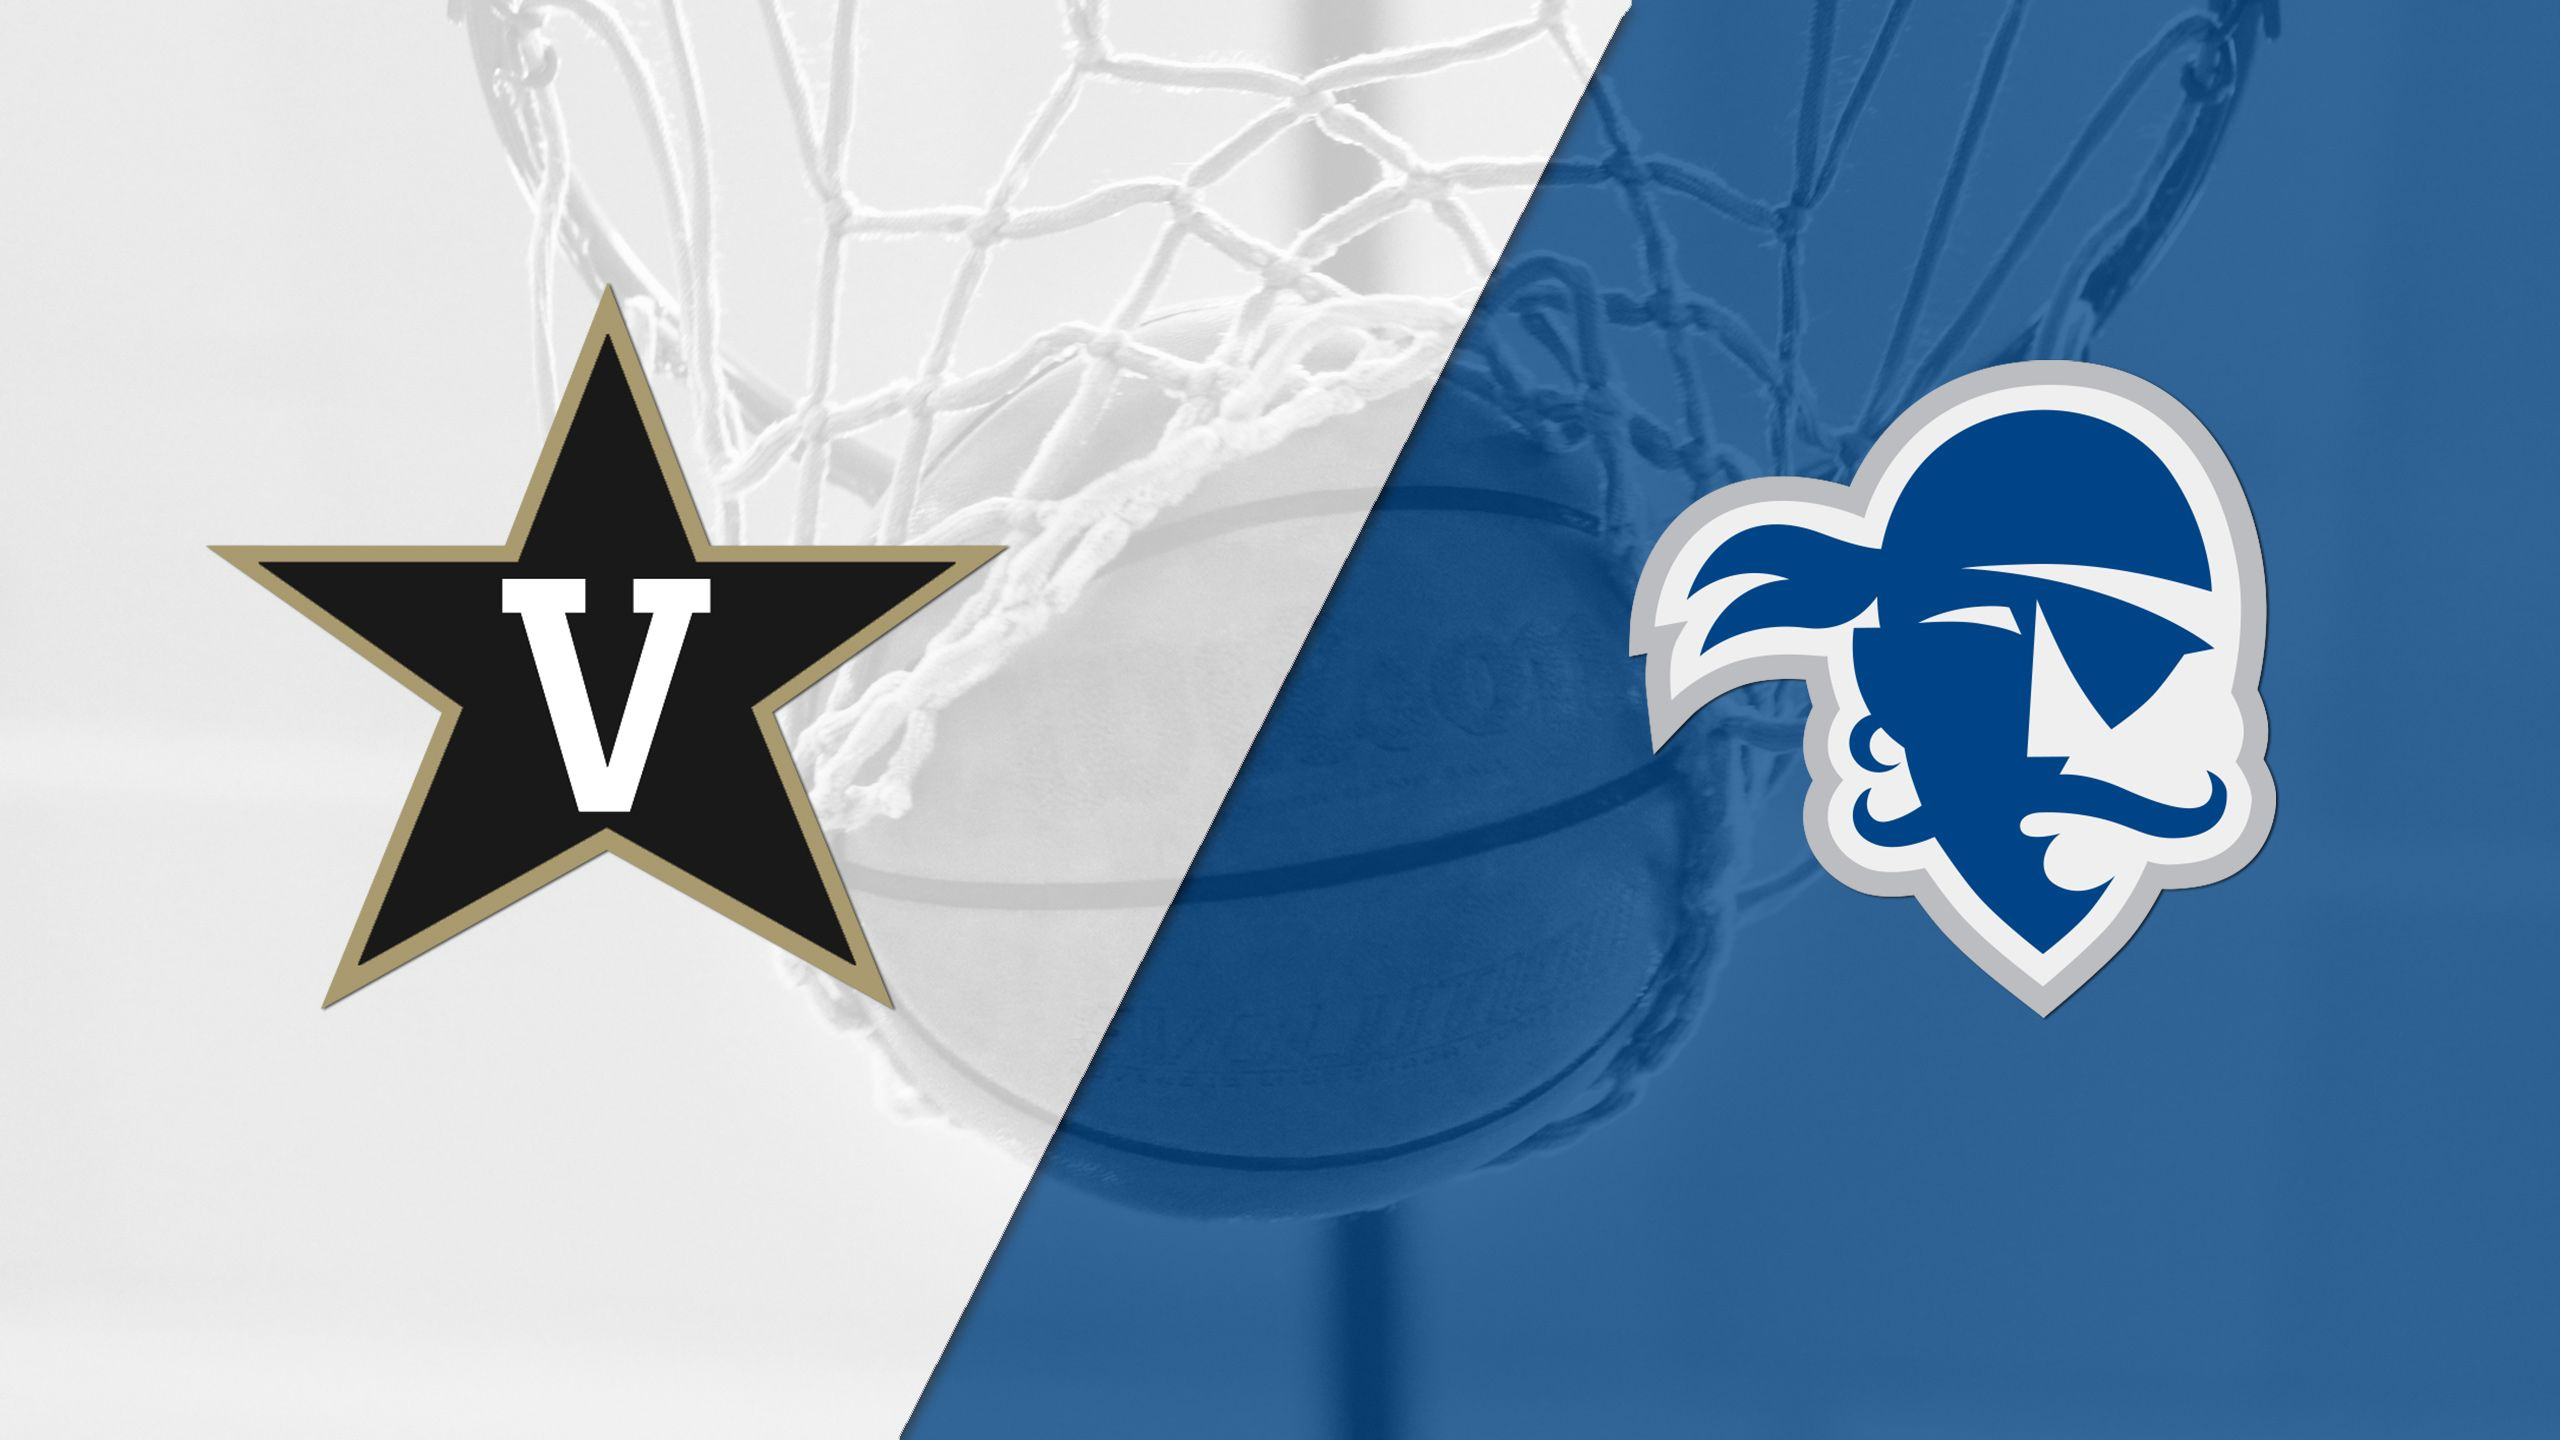 Vanderbilt vs. #20 Seton Hall (Third Place) (NIT Tip-Off)